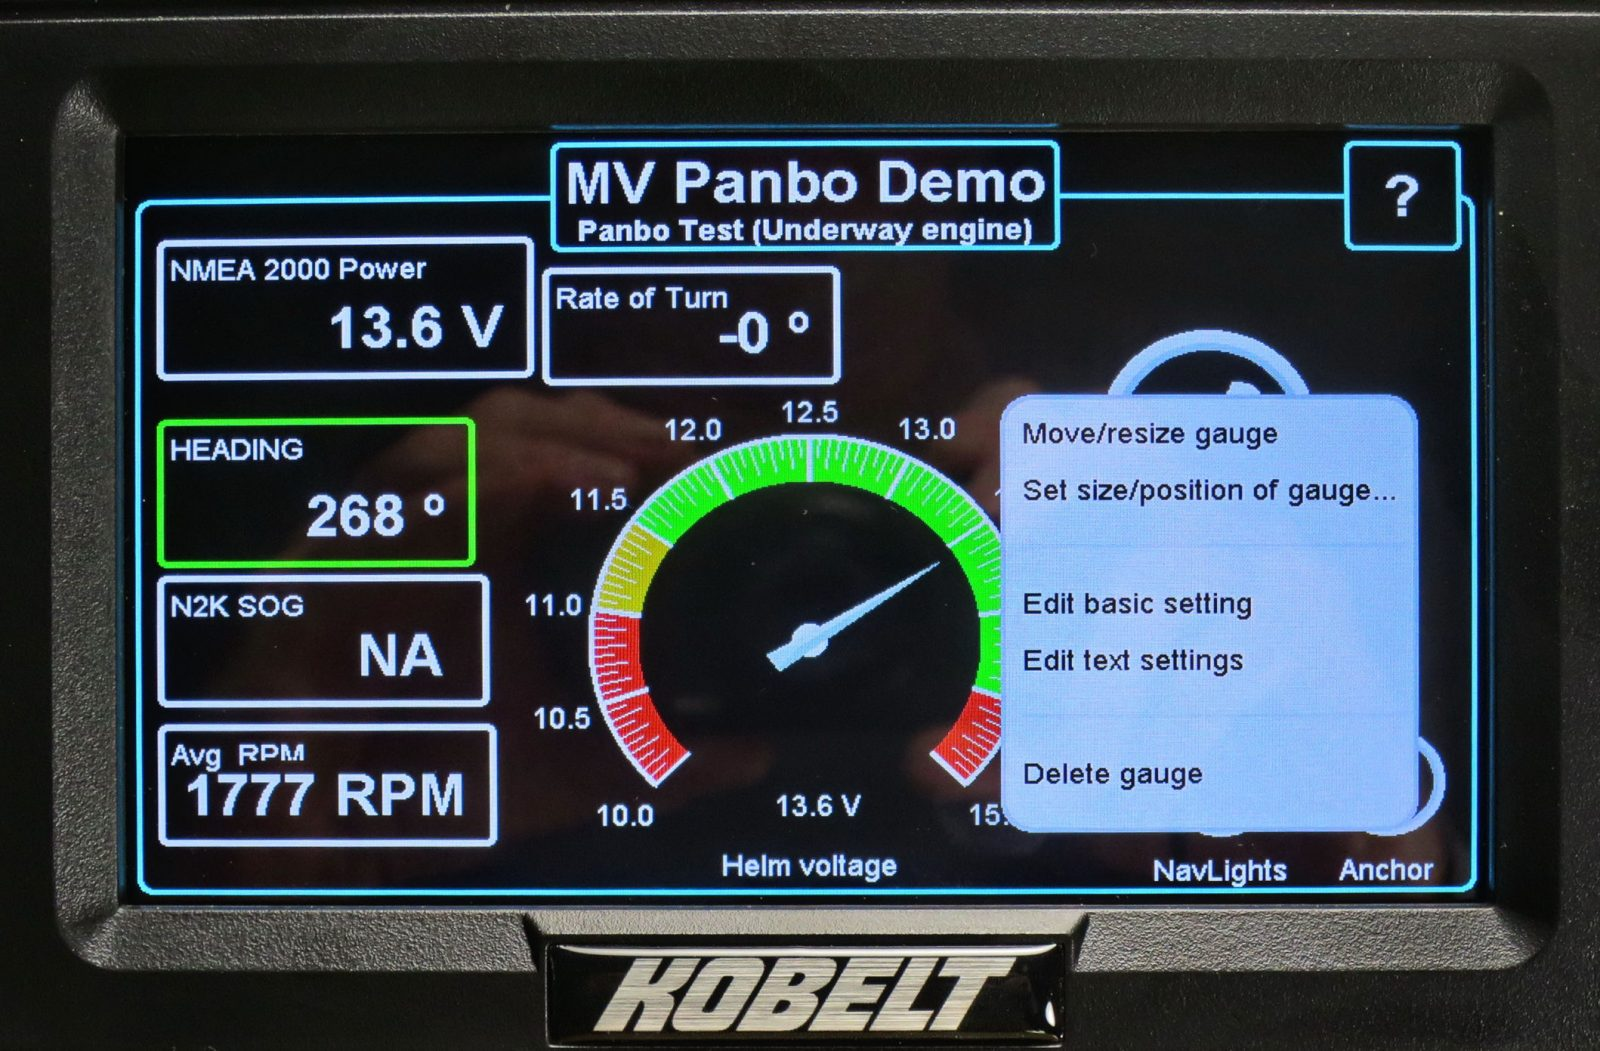 Panbo Test panel also showing touch gauge editing